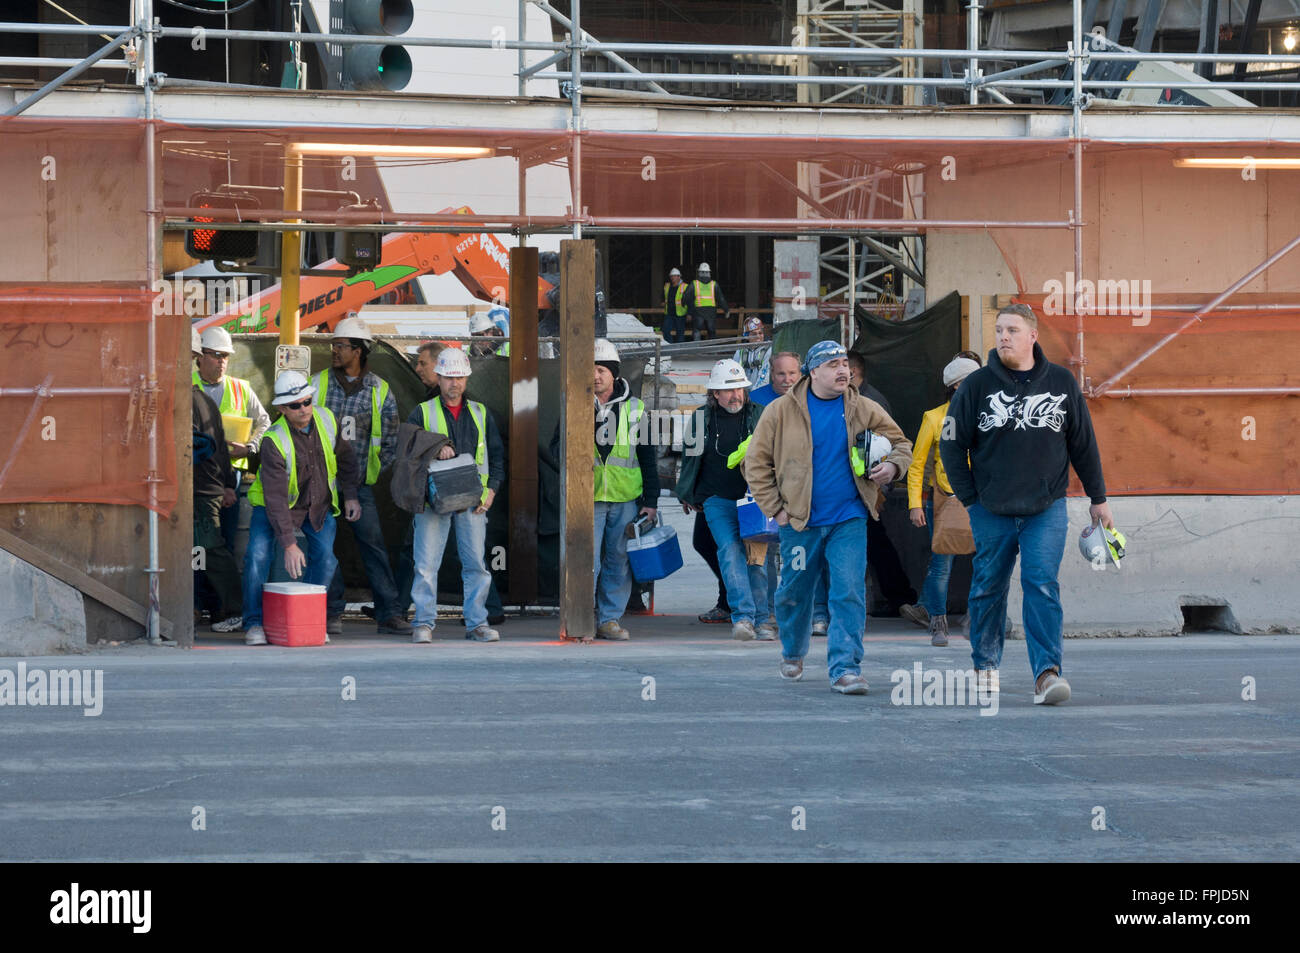 Las Vegas, Nevada. A group of construction workers leaving the job after work. - Stock Image